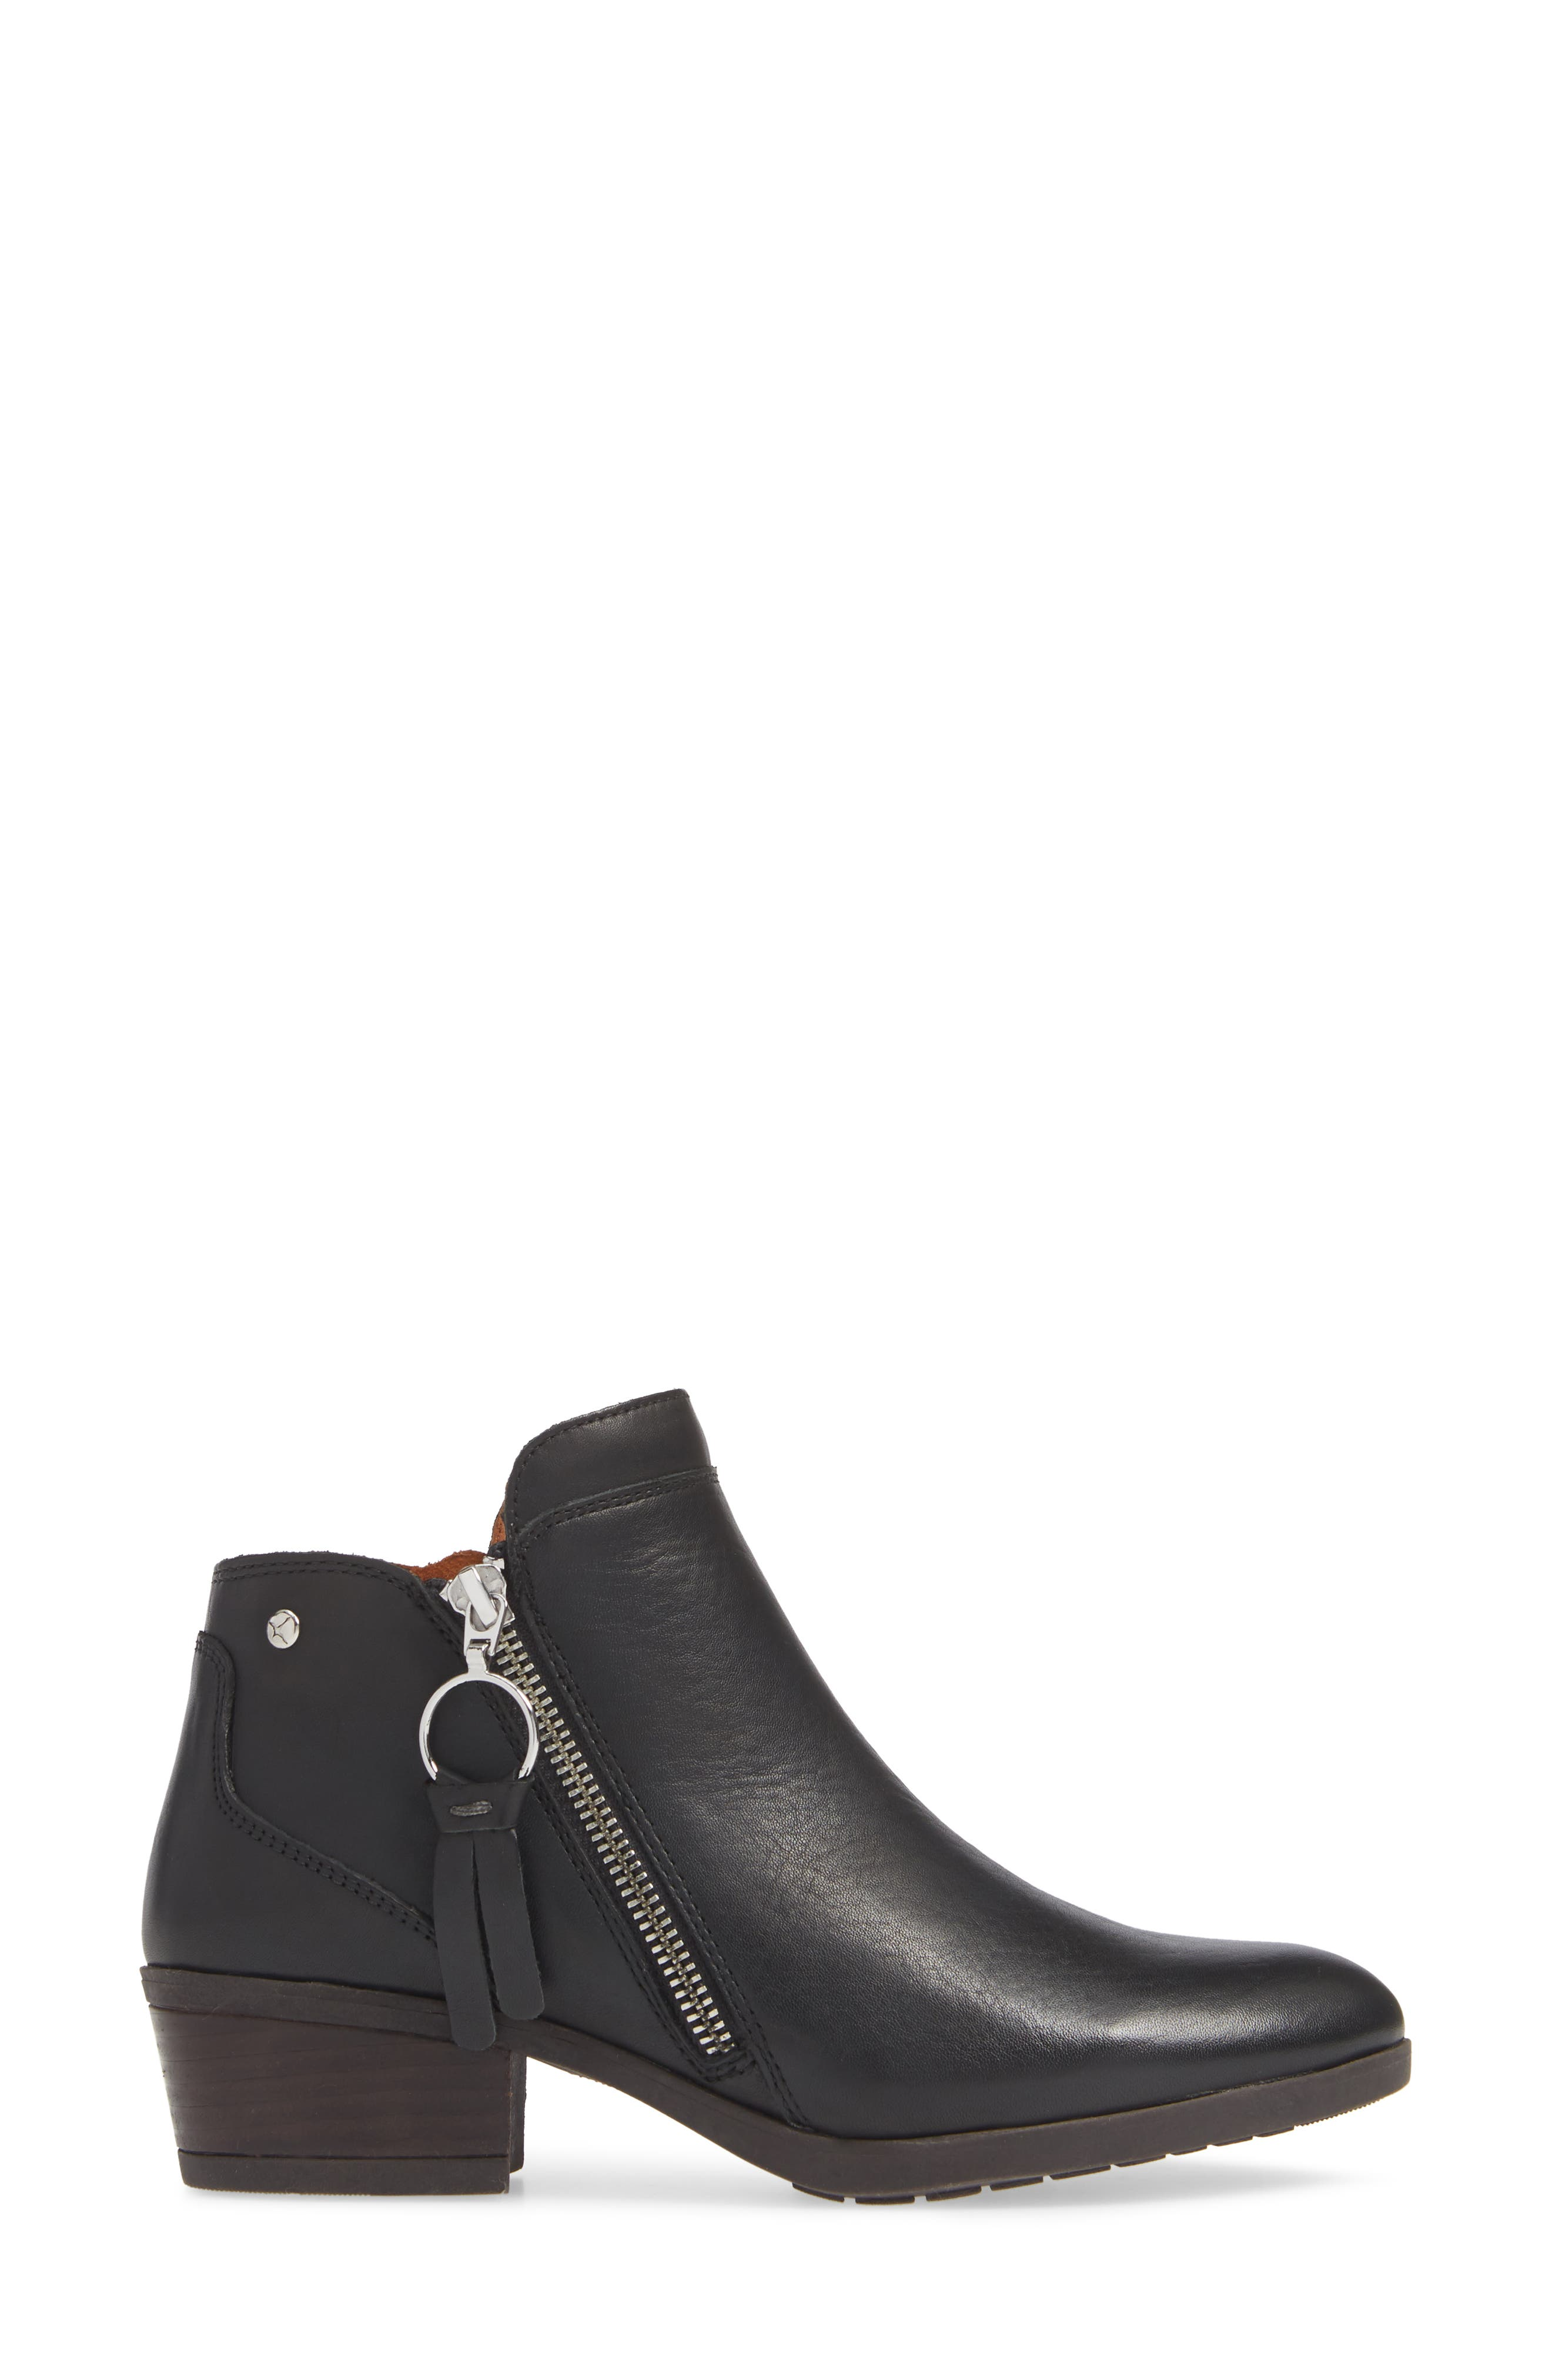 Daroca Bootie,                             Alternate thumbnail 3, color,                             BLACK LEATHER